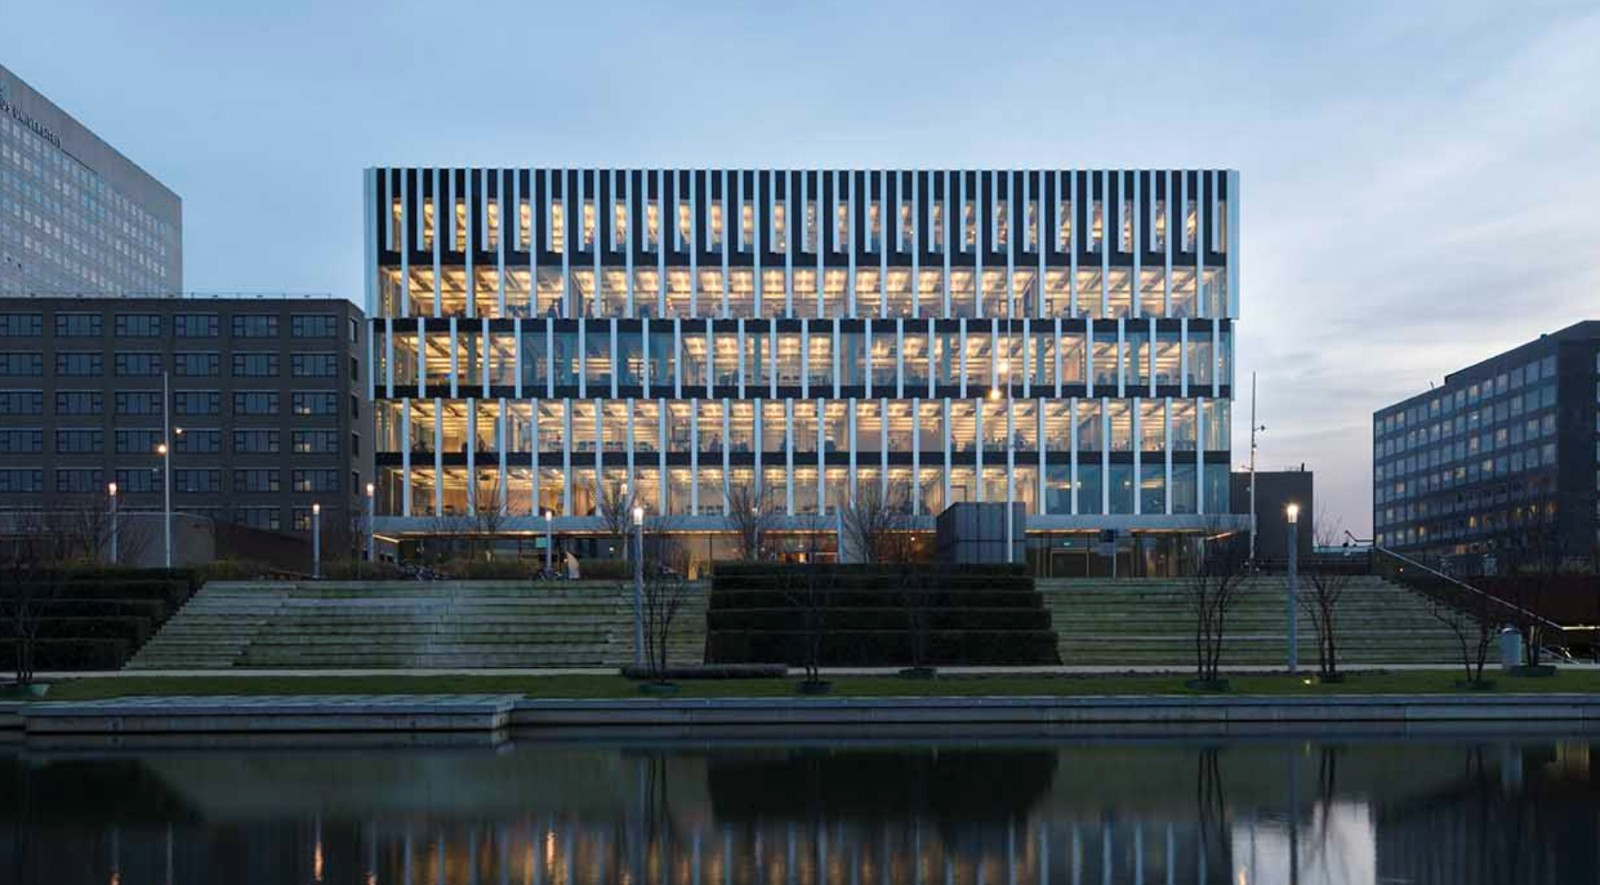 Polak Building Erasmus University Rotterdam By Paul De